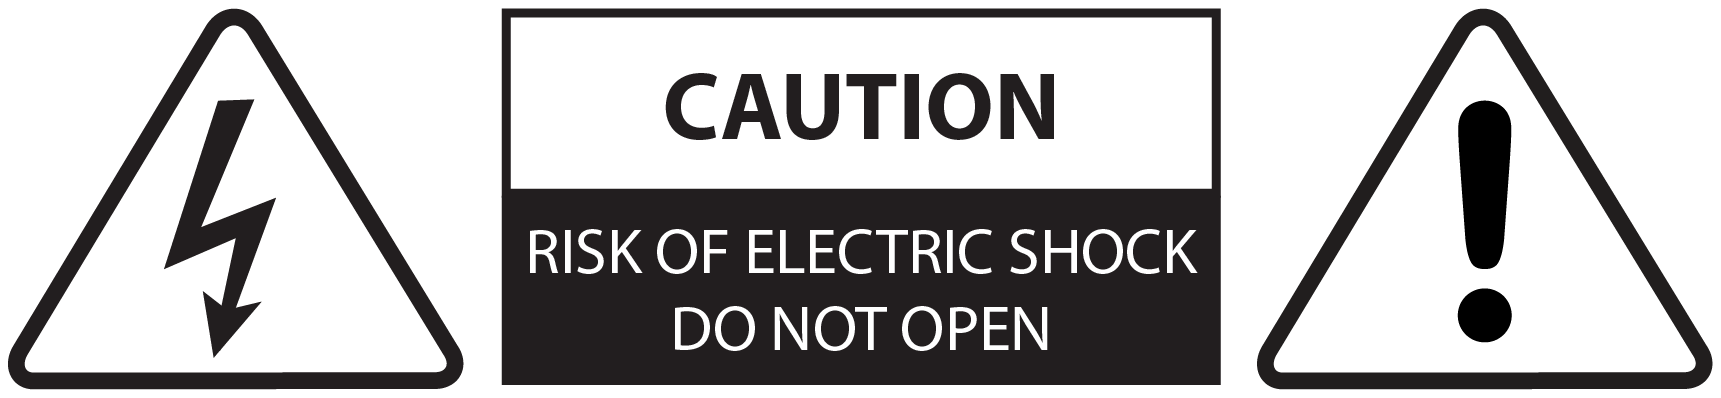 Warning symbols indicating a risk of electric shock